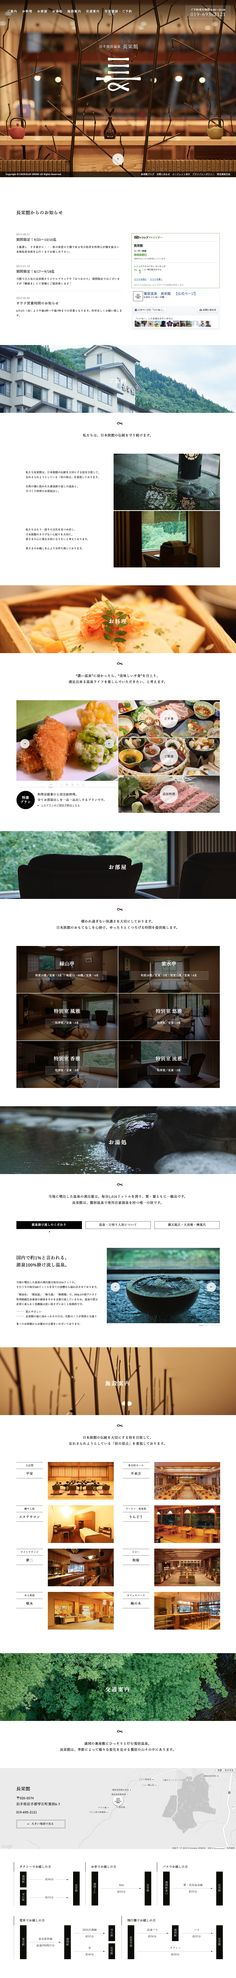 81-web.com【Webデザイン リンク集】 Food Web Design, Best Web Design, Web Layout, Layout Design, Typography Design, Branding Design, Hotel Website Design, Newsletter Design, Ui Web